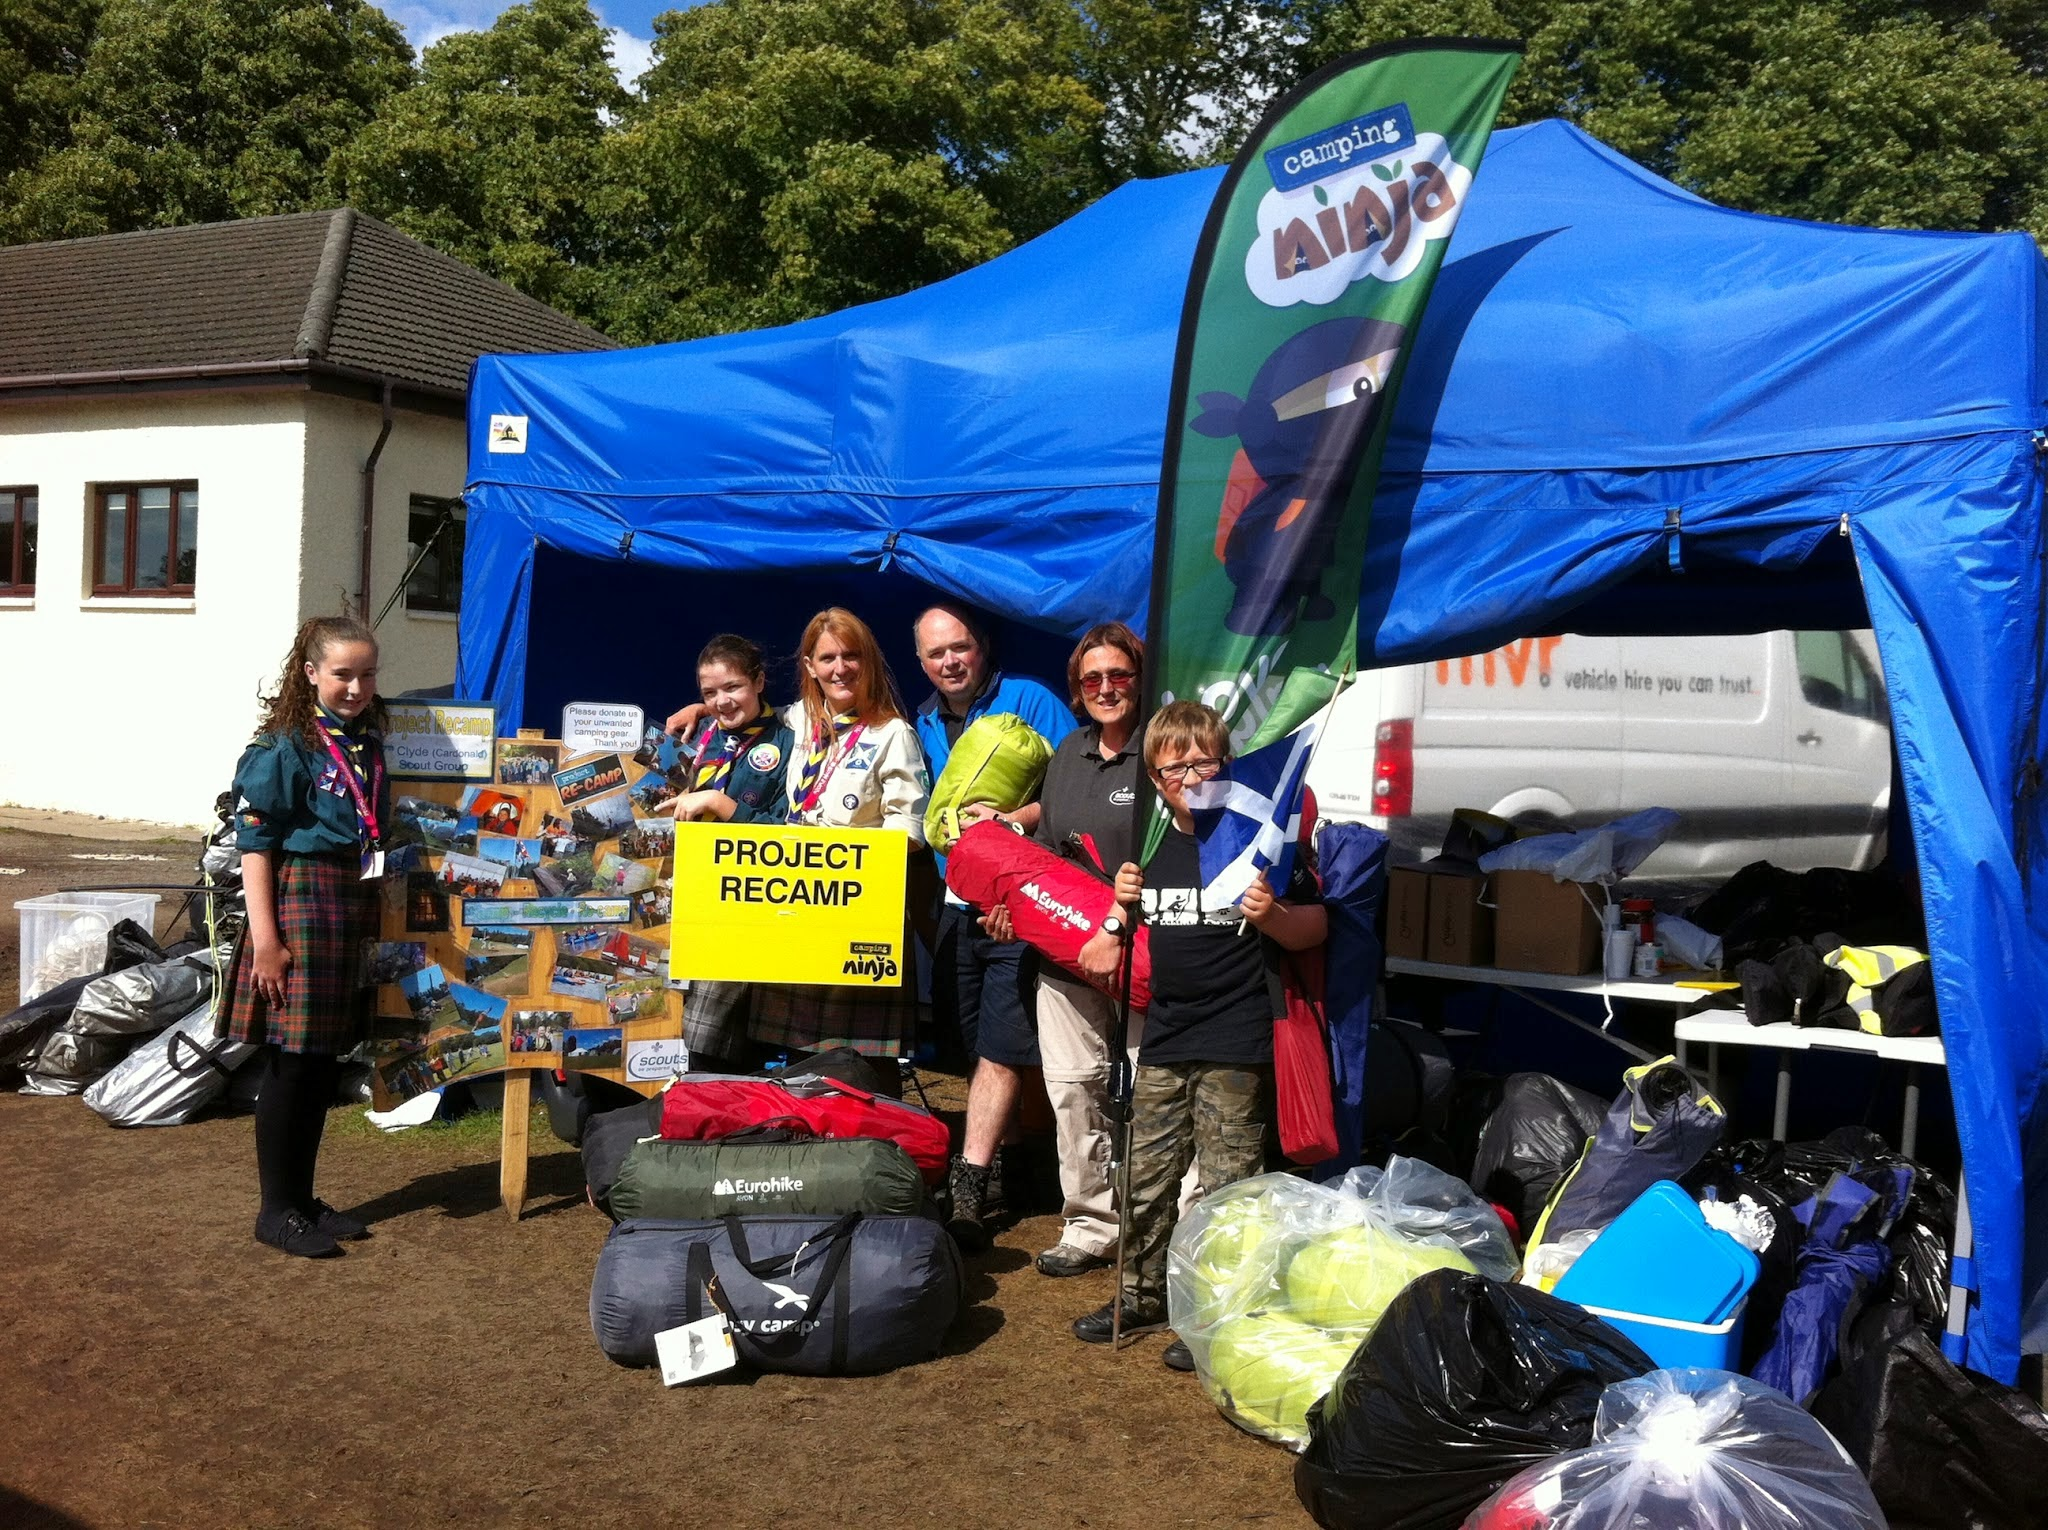 A Glasgow Scout Group Collecting their Campingninja Project Recamp Kit